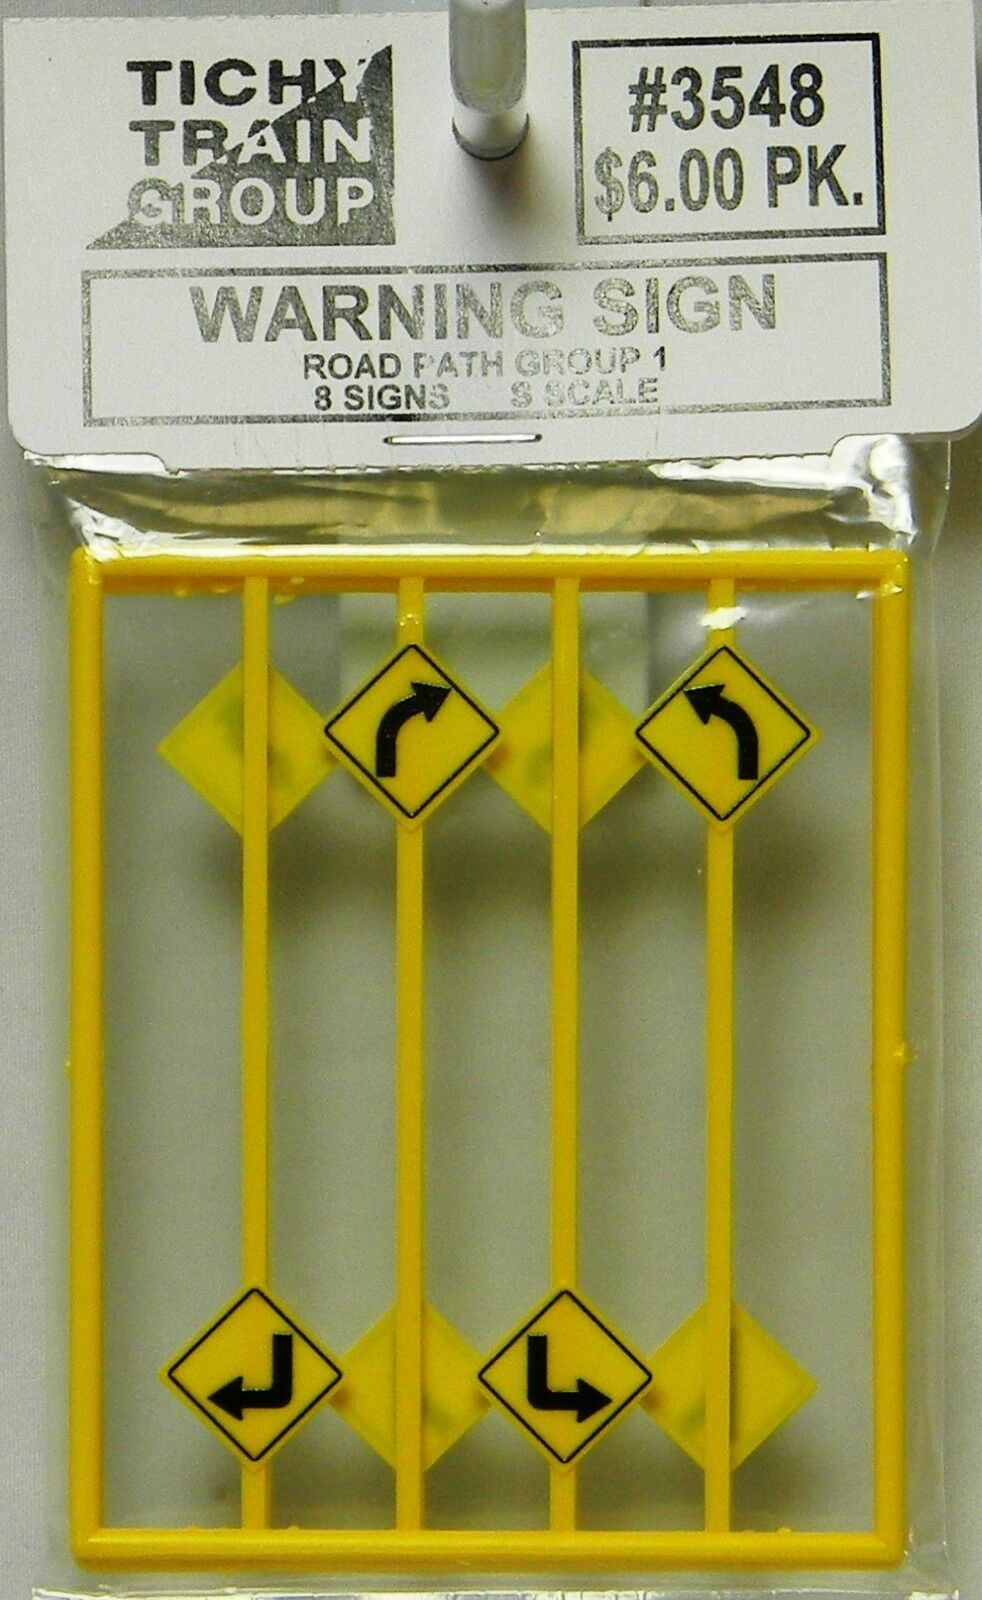 NIB S Tichy 3548 3548 3548 Warning Sign Road Path Group Pcs 430eee